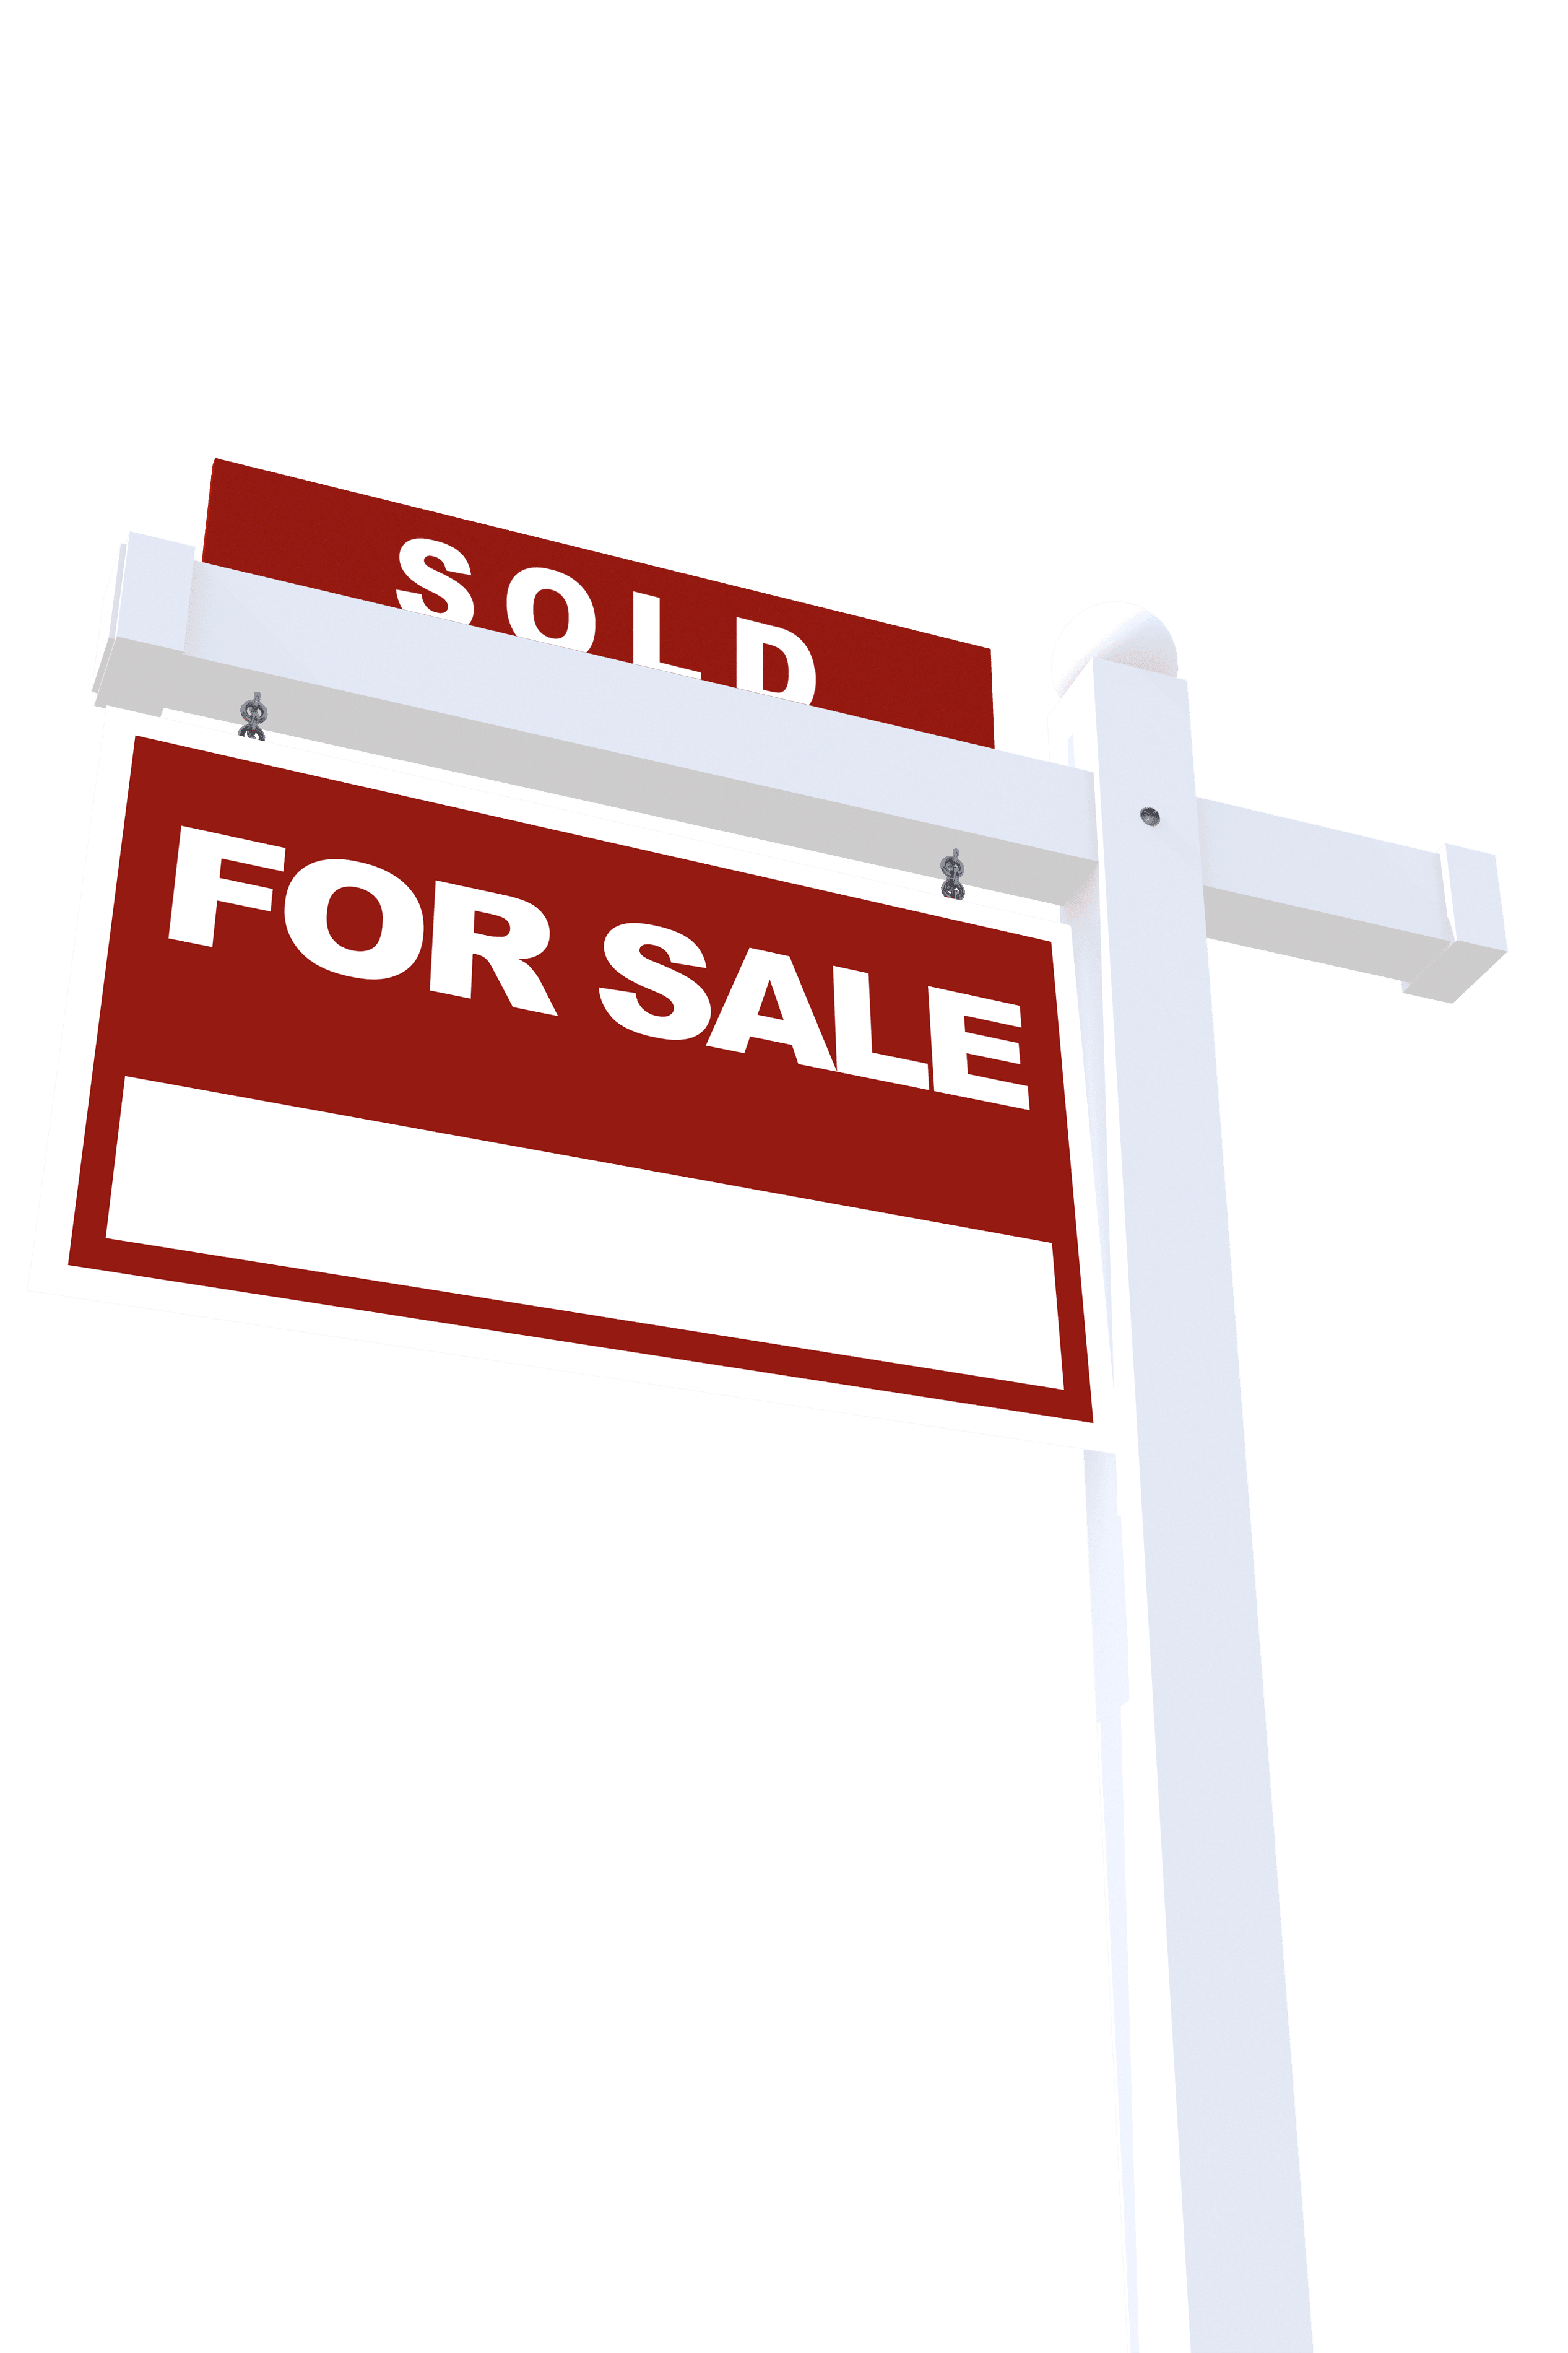 For Sale Sold Sign: Home Seller Serivces